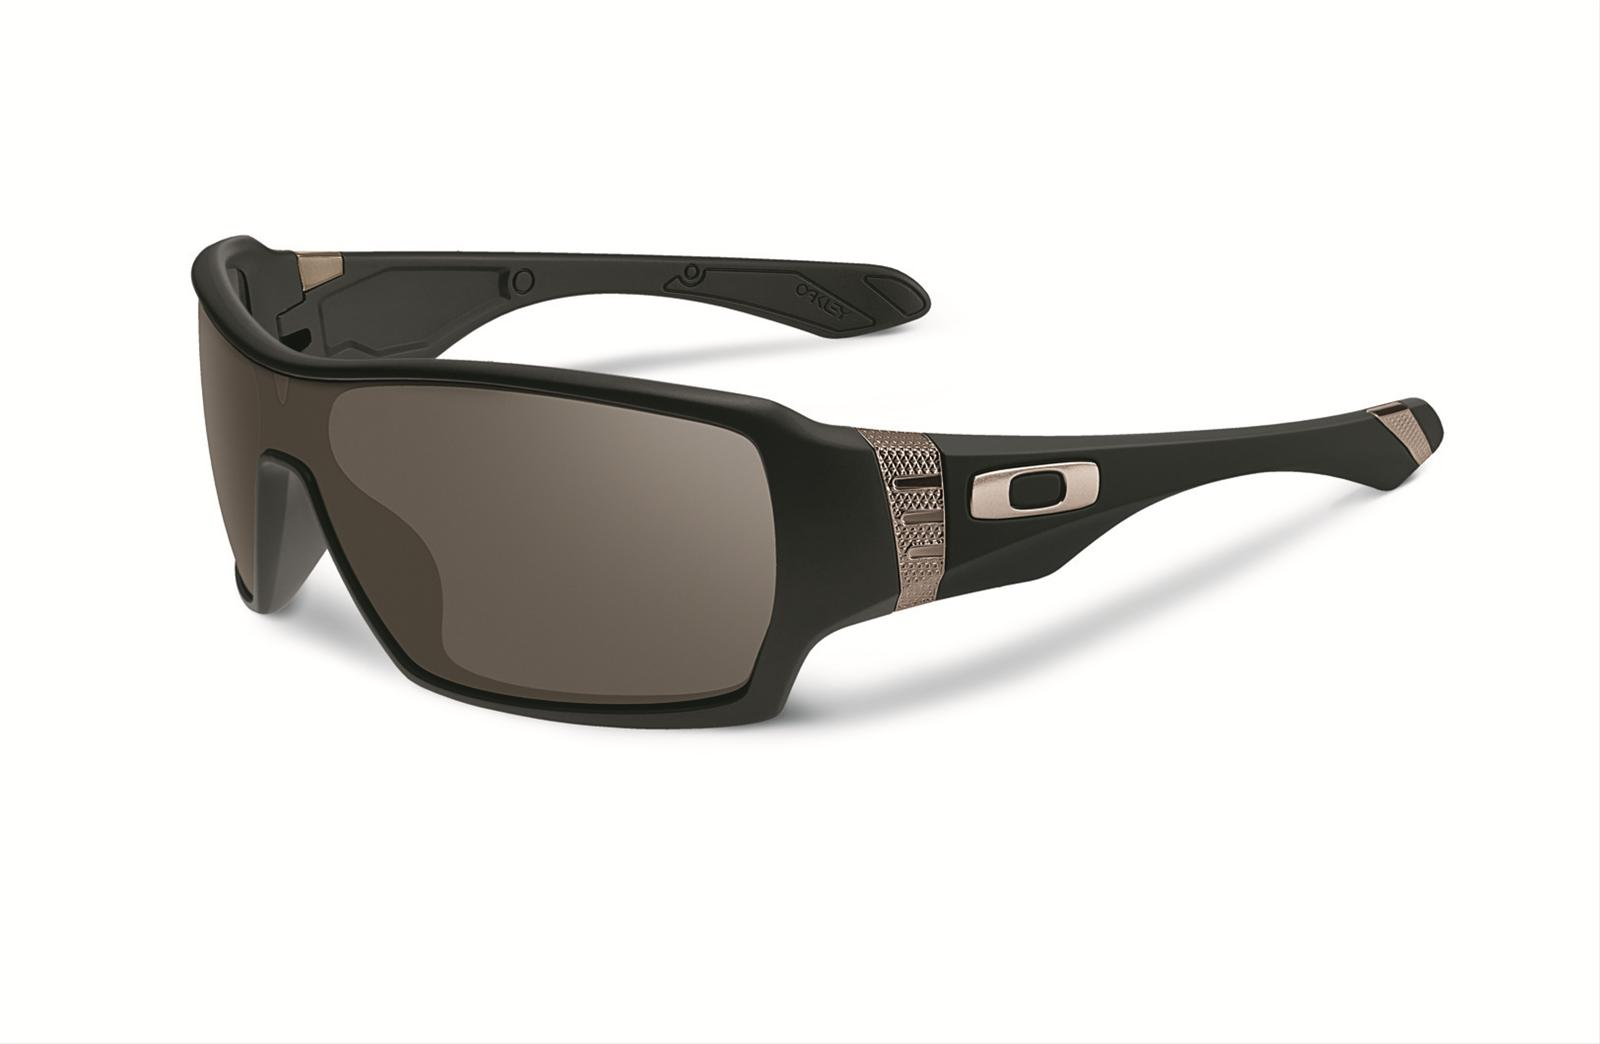 c60c1dbdb8b Oakley Offshoot Sunglasses OO9190-01 - Free Shipping on Orders Over  99 at  Summit Racing